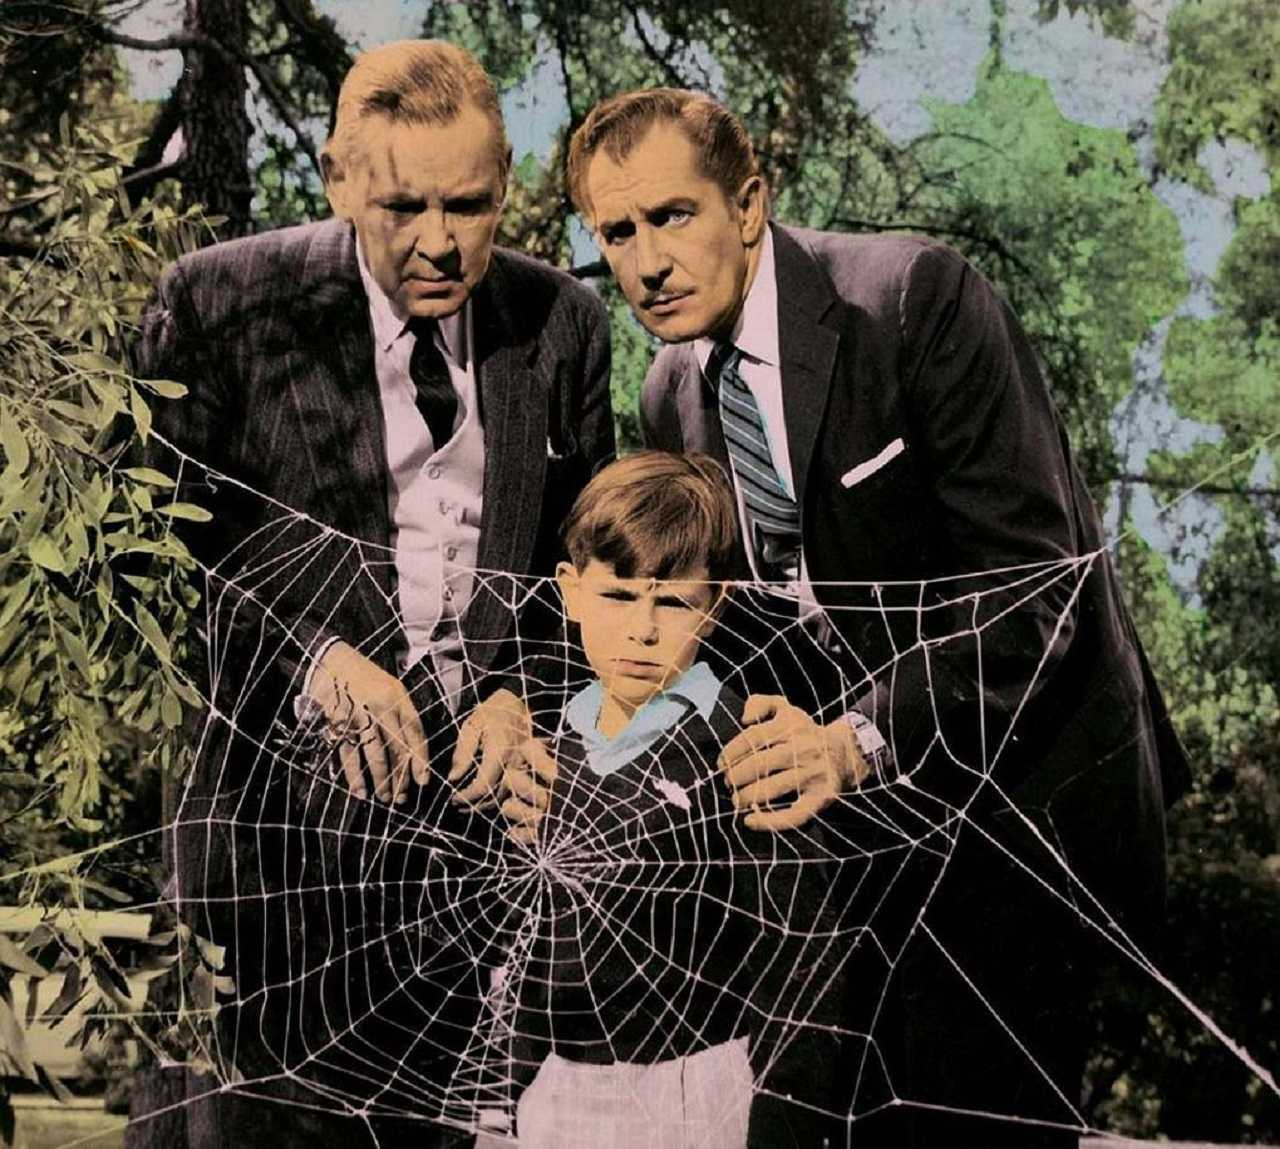 Herbert Marshall, Vincent Price and young Charles Herbert in The Fly (1958)